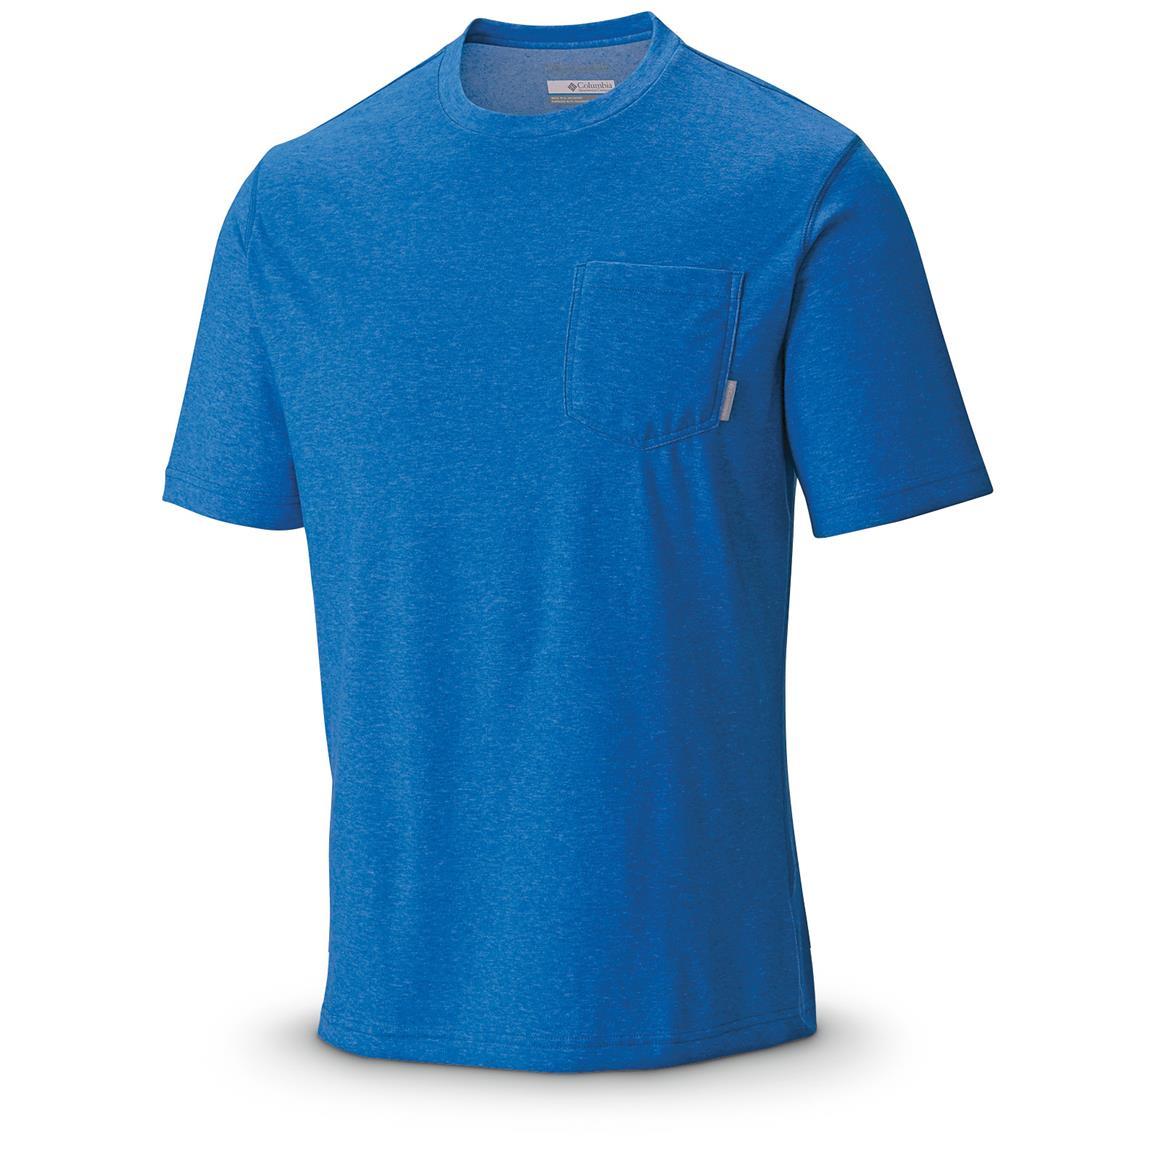 Columbia Men's Thistletown Park Pocket T-Shirt, Super Blue Heather